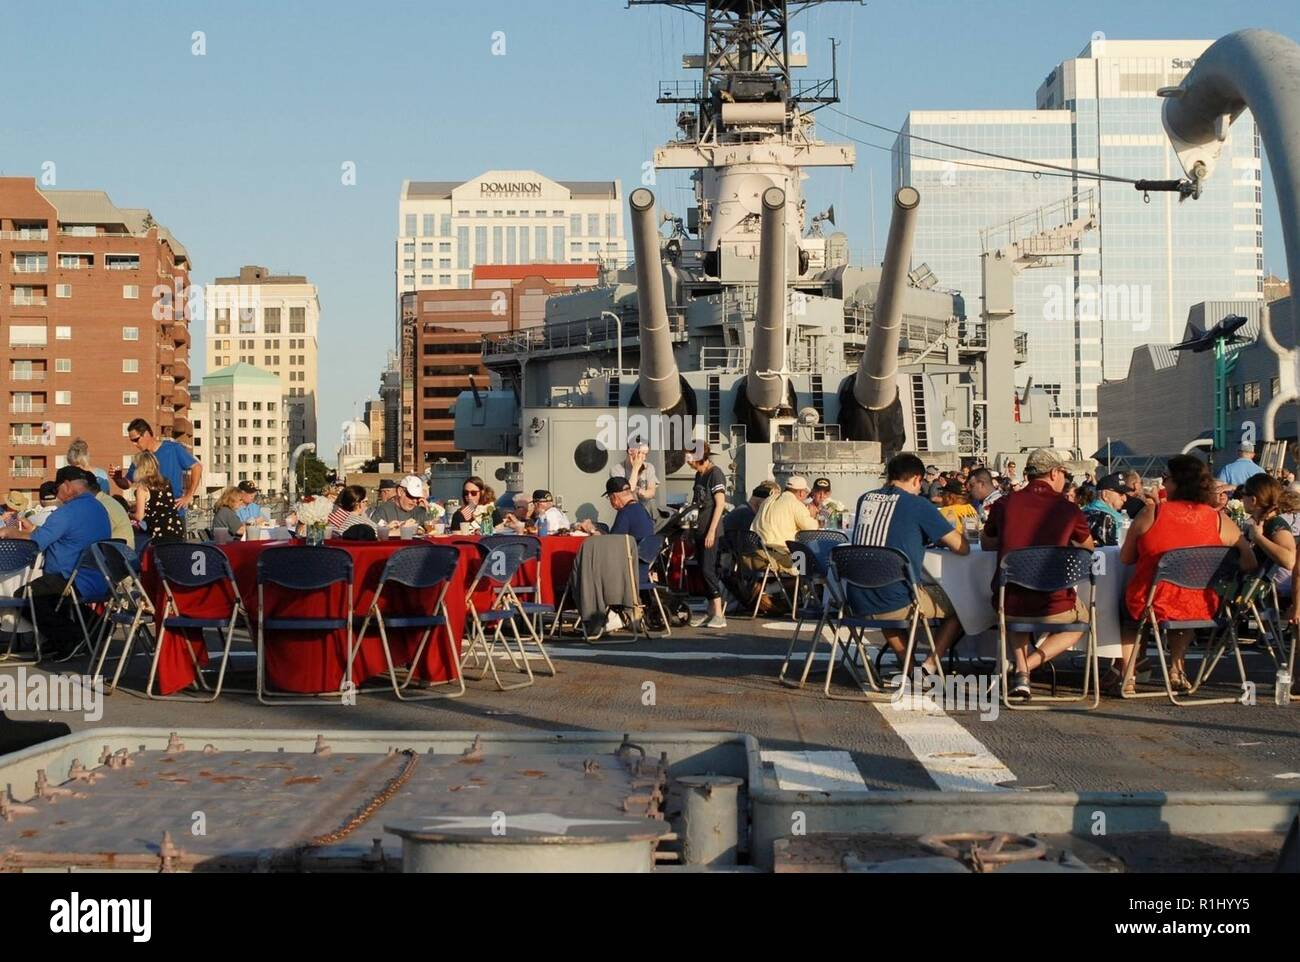 Nearly 200 USS Wisconsin (BB-64) veterans from WWII, the